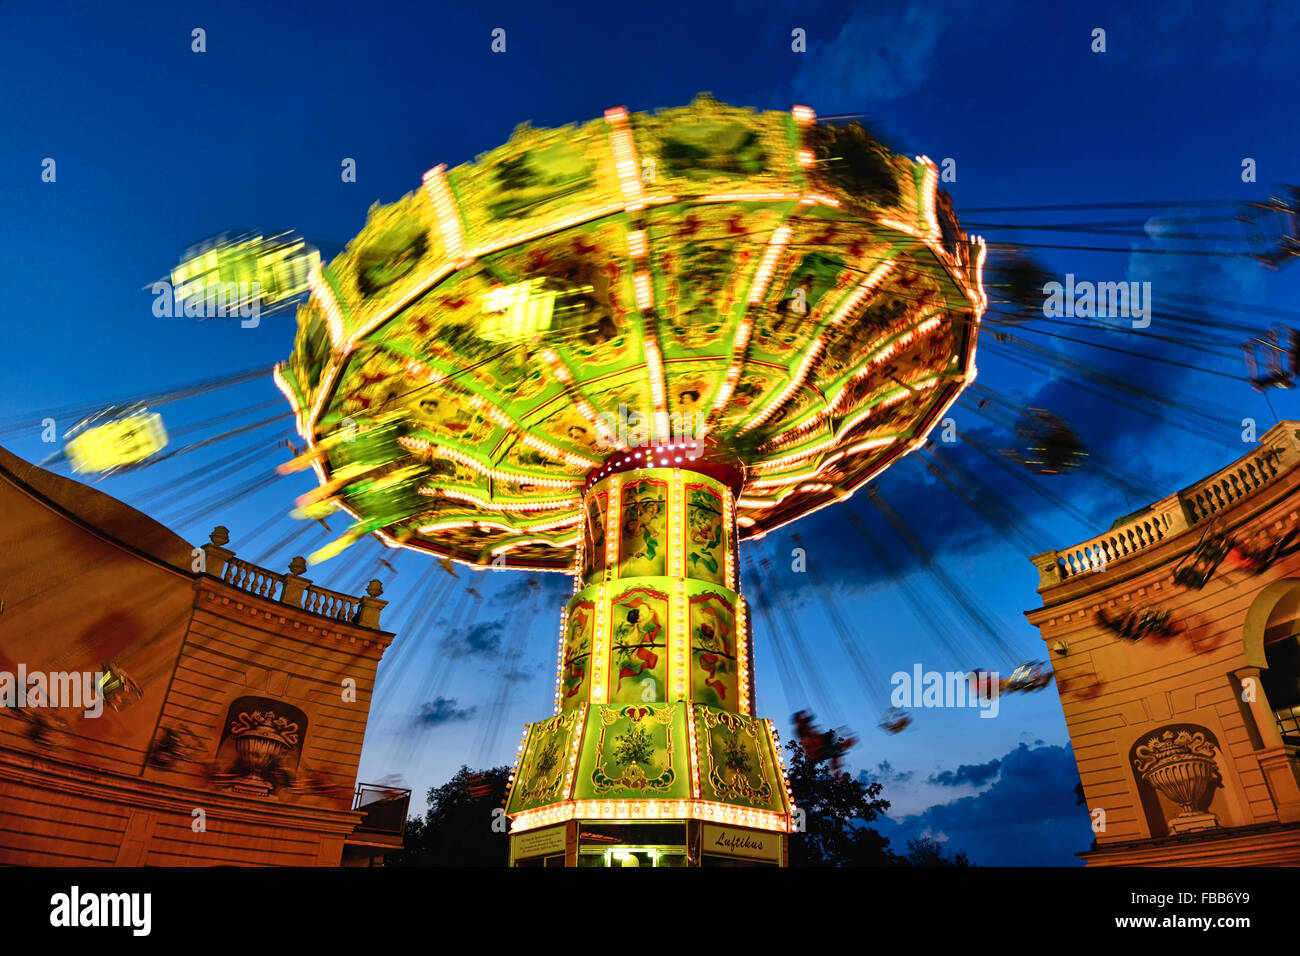 Low Angle View of a Moving Chain Swing Ride at Dusk, Prater Amusement Park, Vienna, Austria - Stock Image